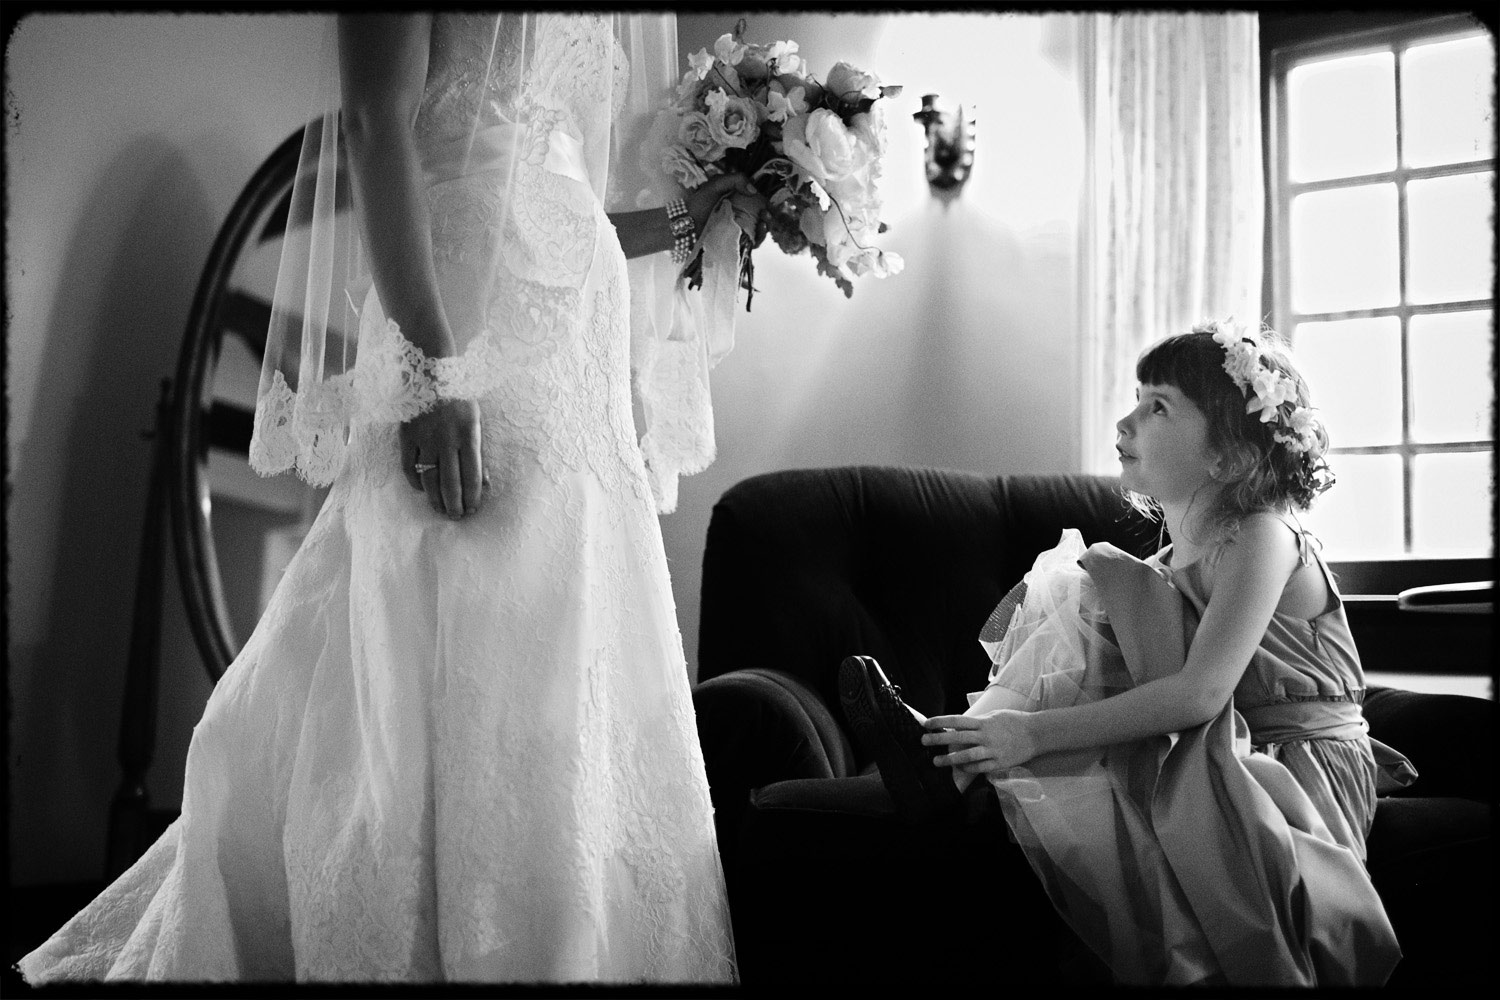 flower girl tying shoes while watching bride